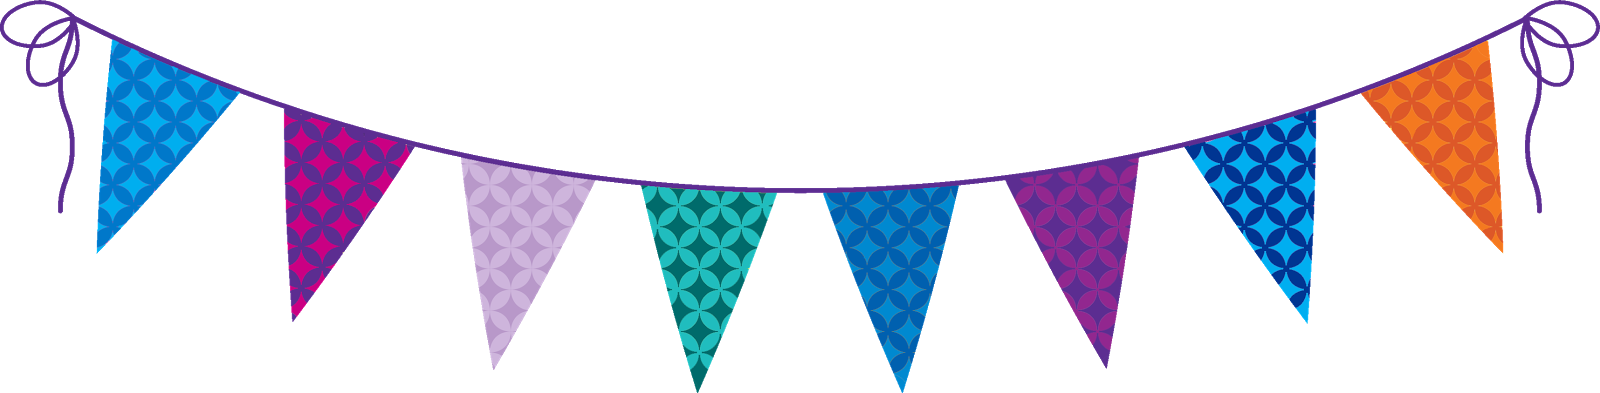 Party transparent pictures free. Birthday png images banner